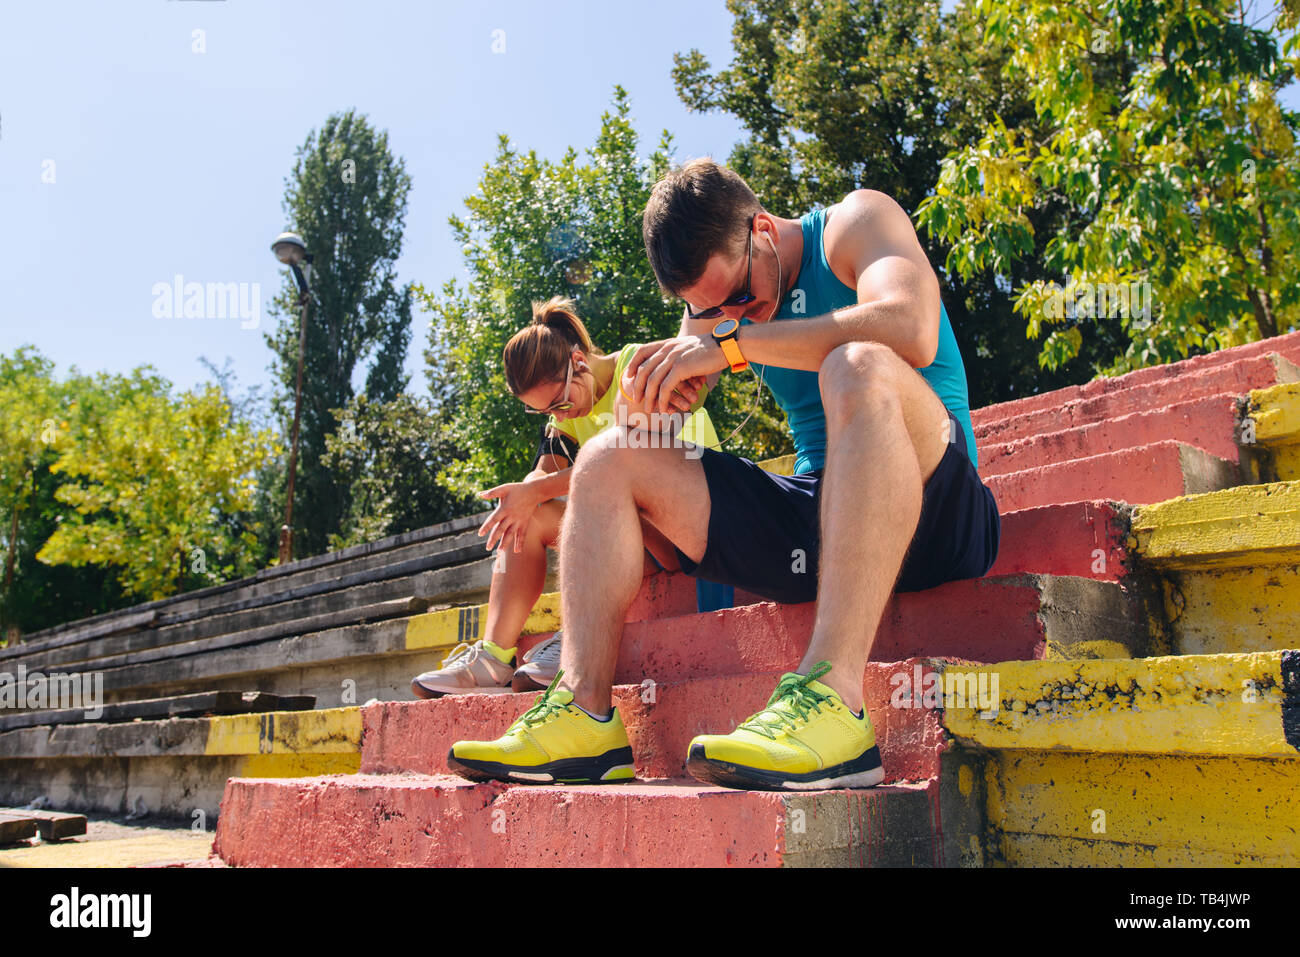 Runners in the city park resting after jogging and listening to music - Stock Image